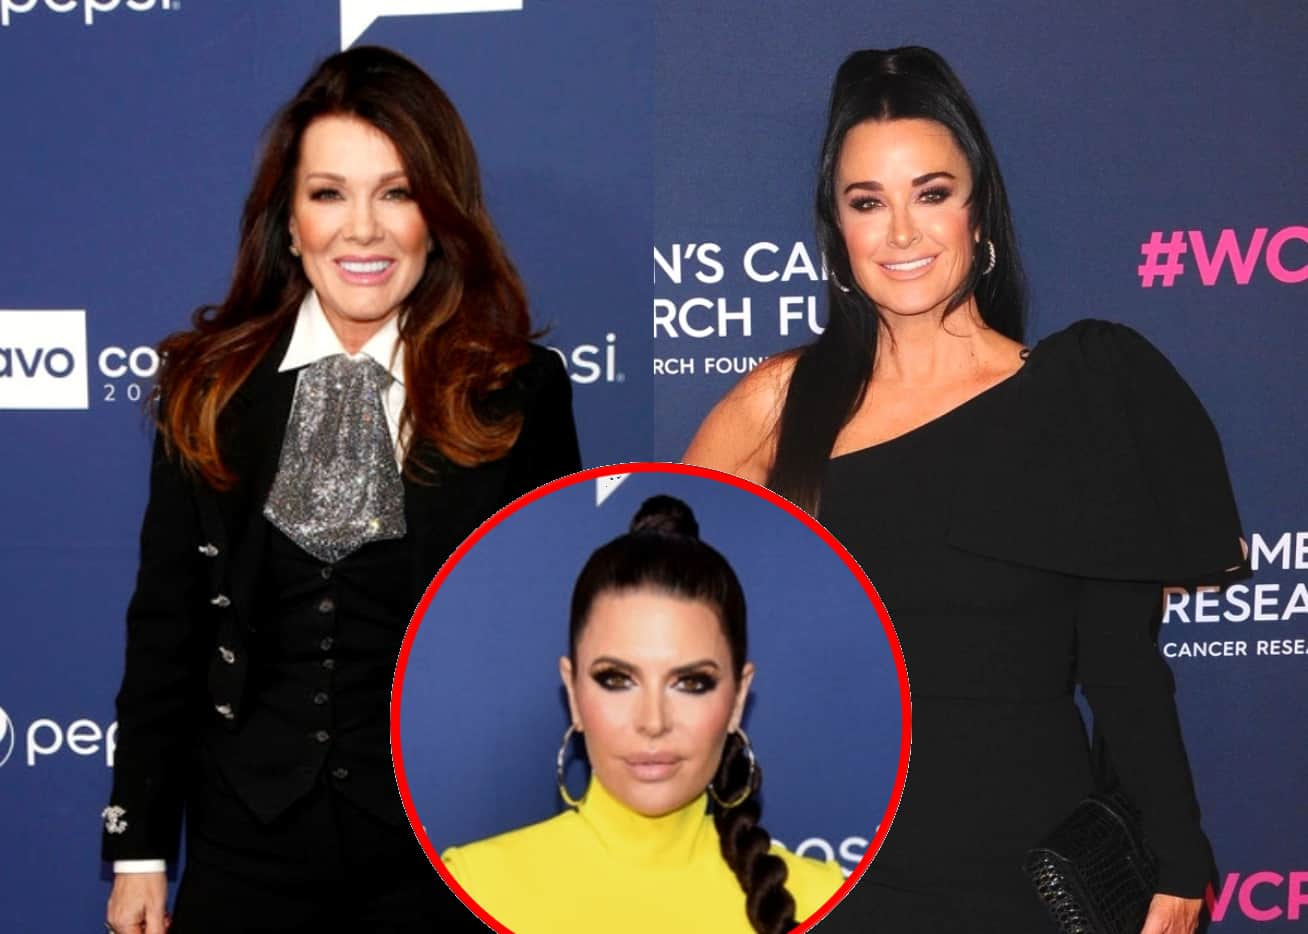 RHOBH Alum Lisa Vanderpump Discusses Kyle Richards Reaching Out to Her and Admits a Reconciliation Is Possible, Calls Out Lisa Rinna for Betraying Denise Richards, and Reacts to Brandi and Denise's Drama